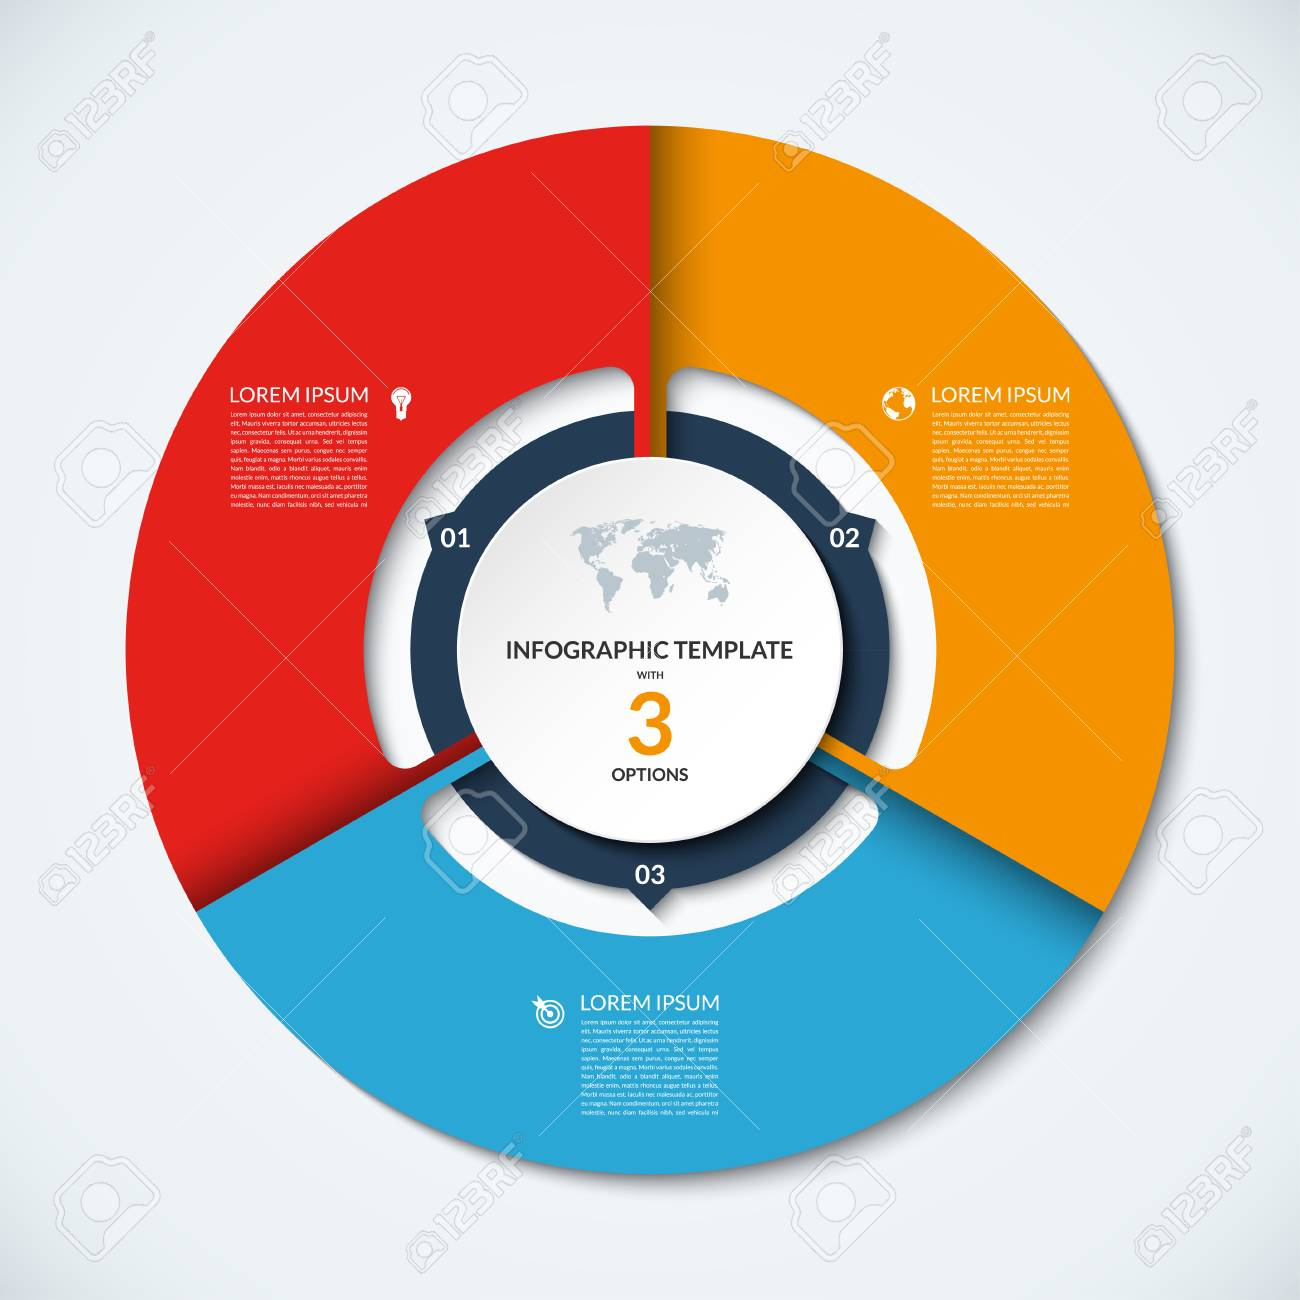 circle infographic template vector layout with 3 options can be used for cycle diagram